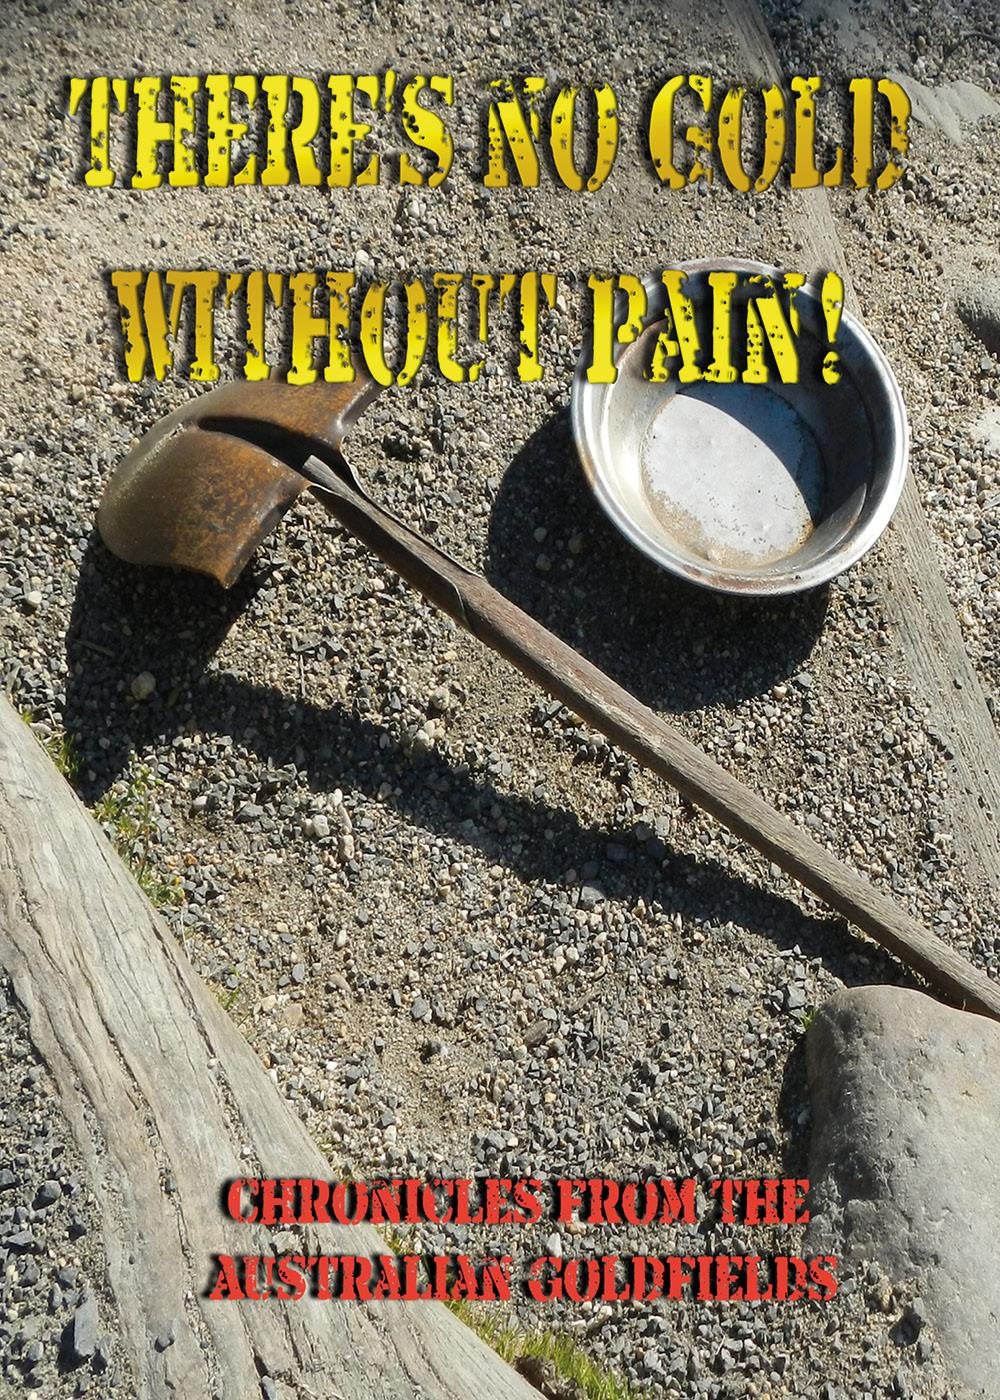 There's no gold without pain!